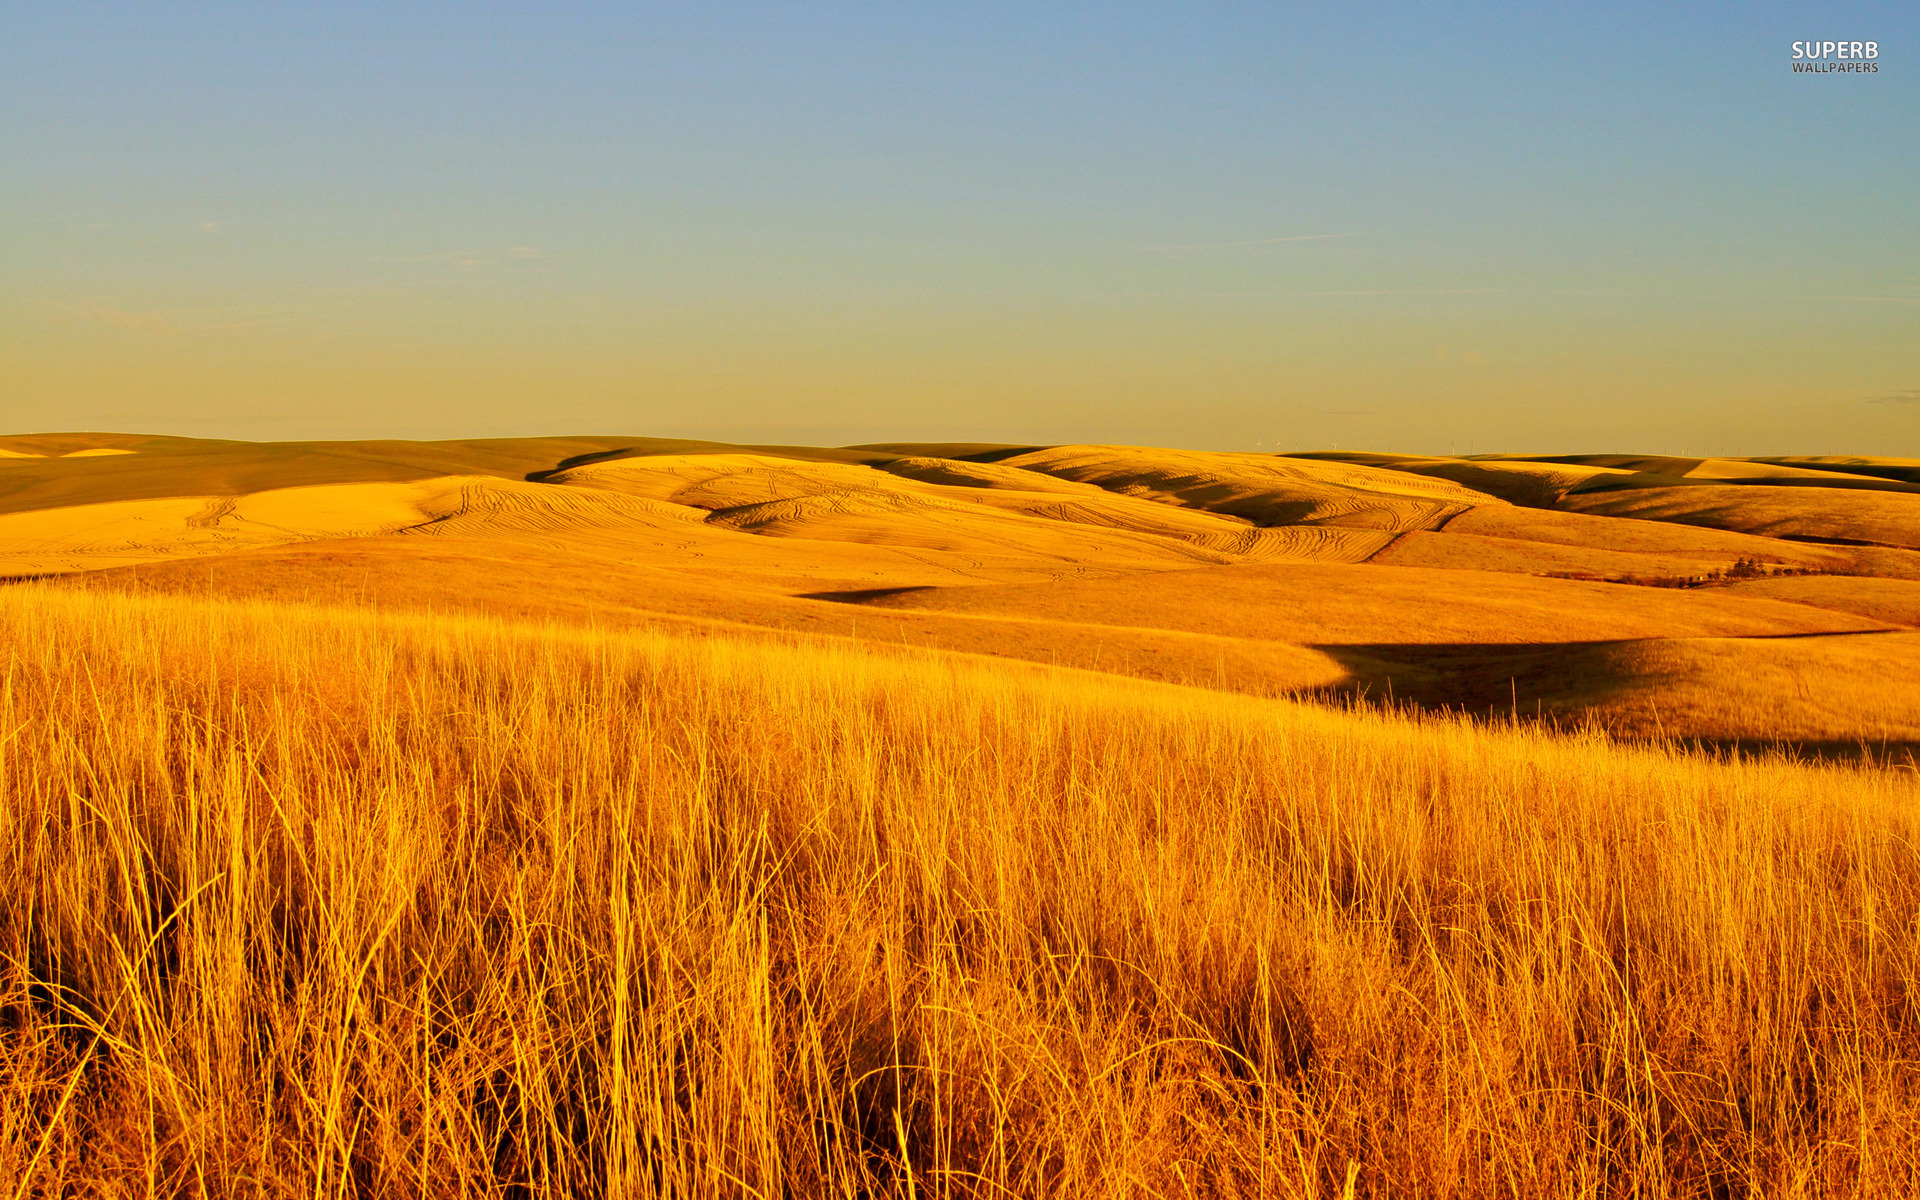 Fall Fields Wallpaper For Iphone Dry Grass Fields Wallpapers Dry Grass Fields Stock Photos